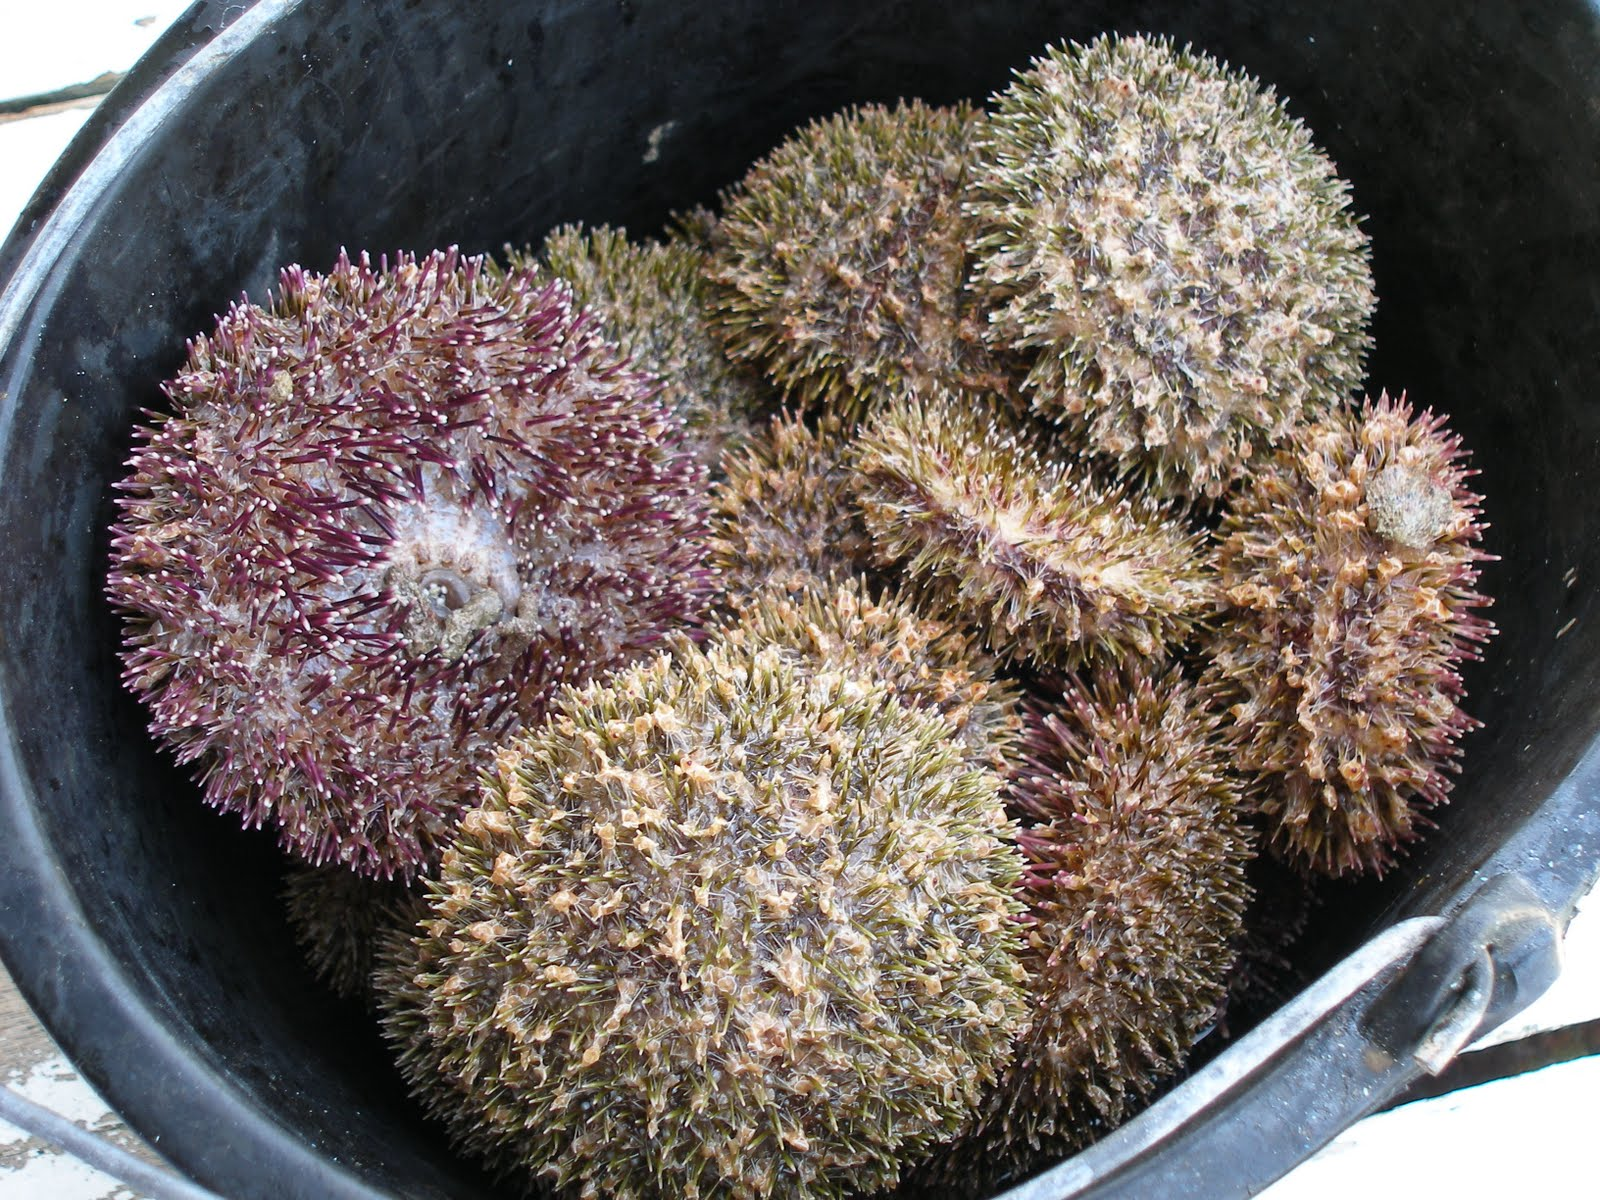 davao, city, samal, island, white, sand, beach, garden, diving, vanishing, blue, water, sea, urchin, mindanao, philippines